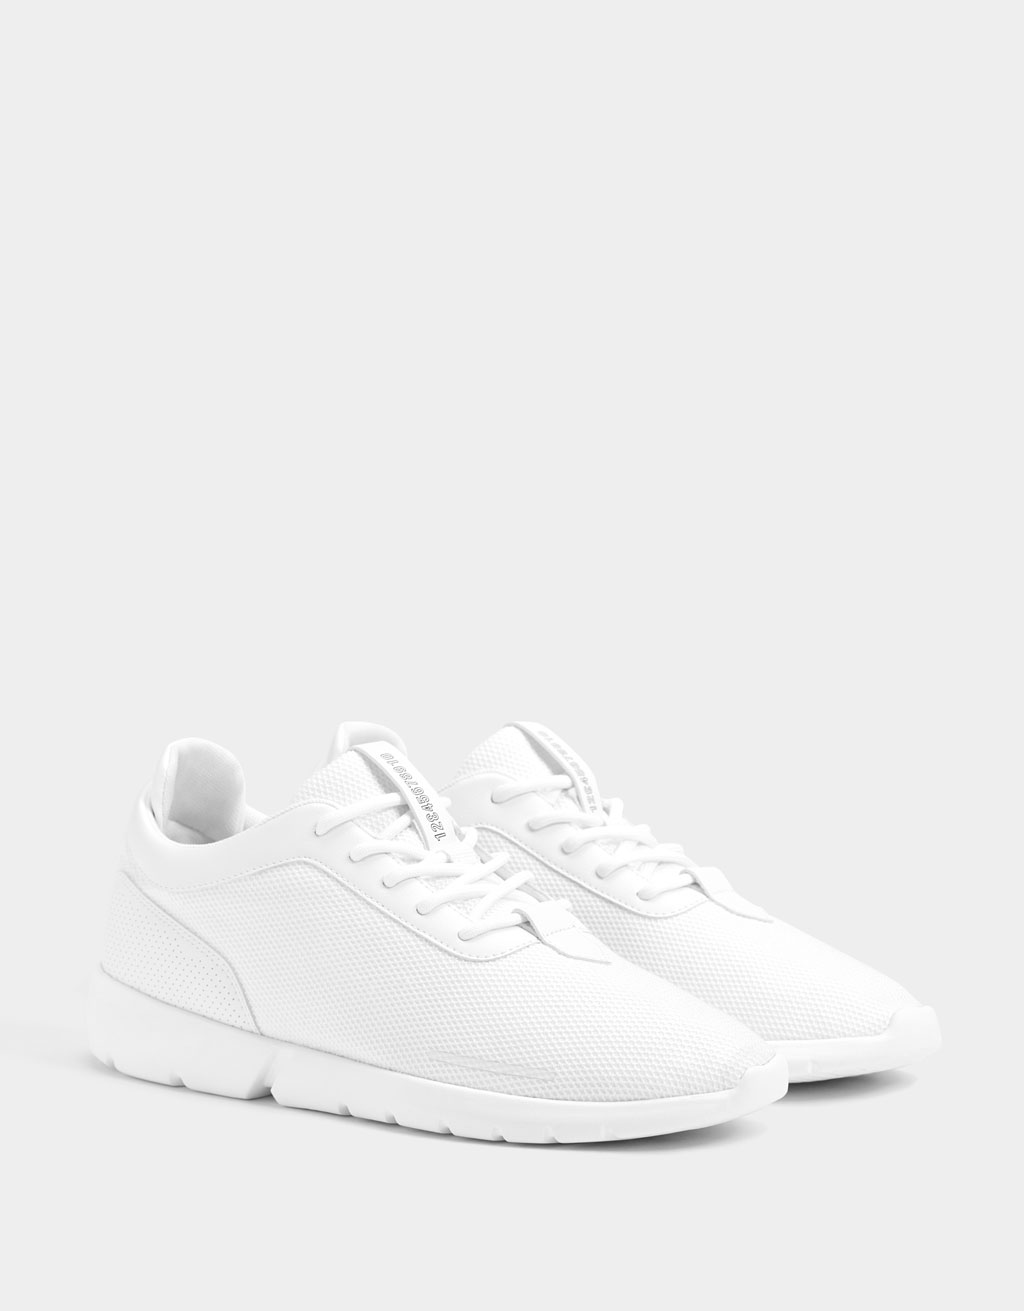 Men's mesh trainers